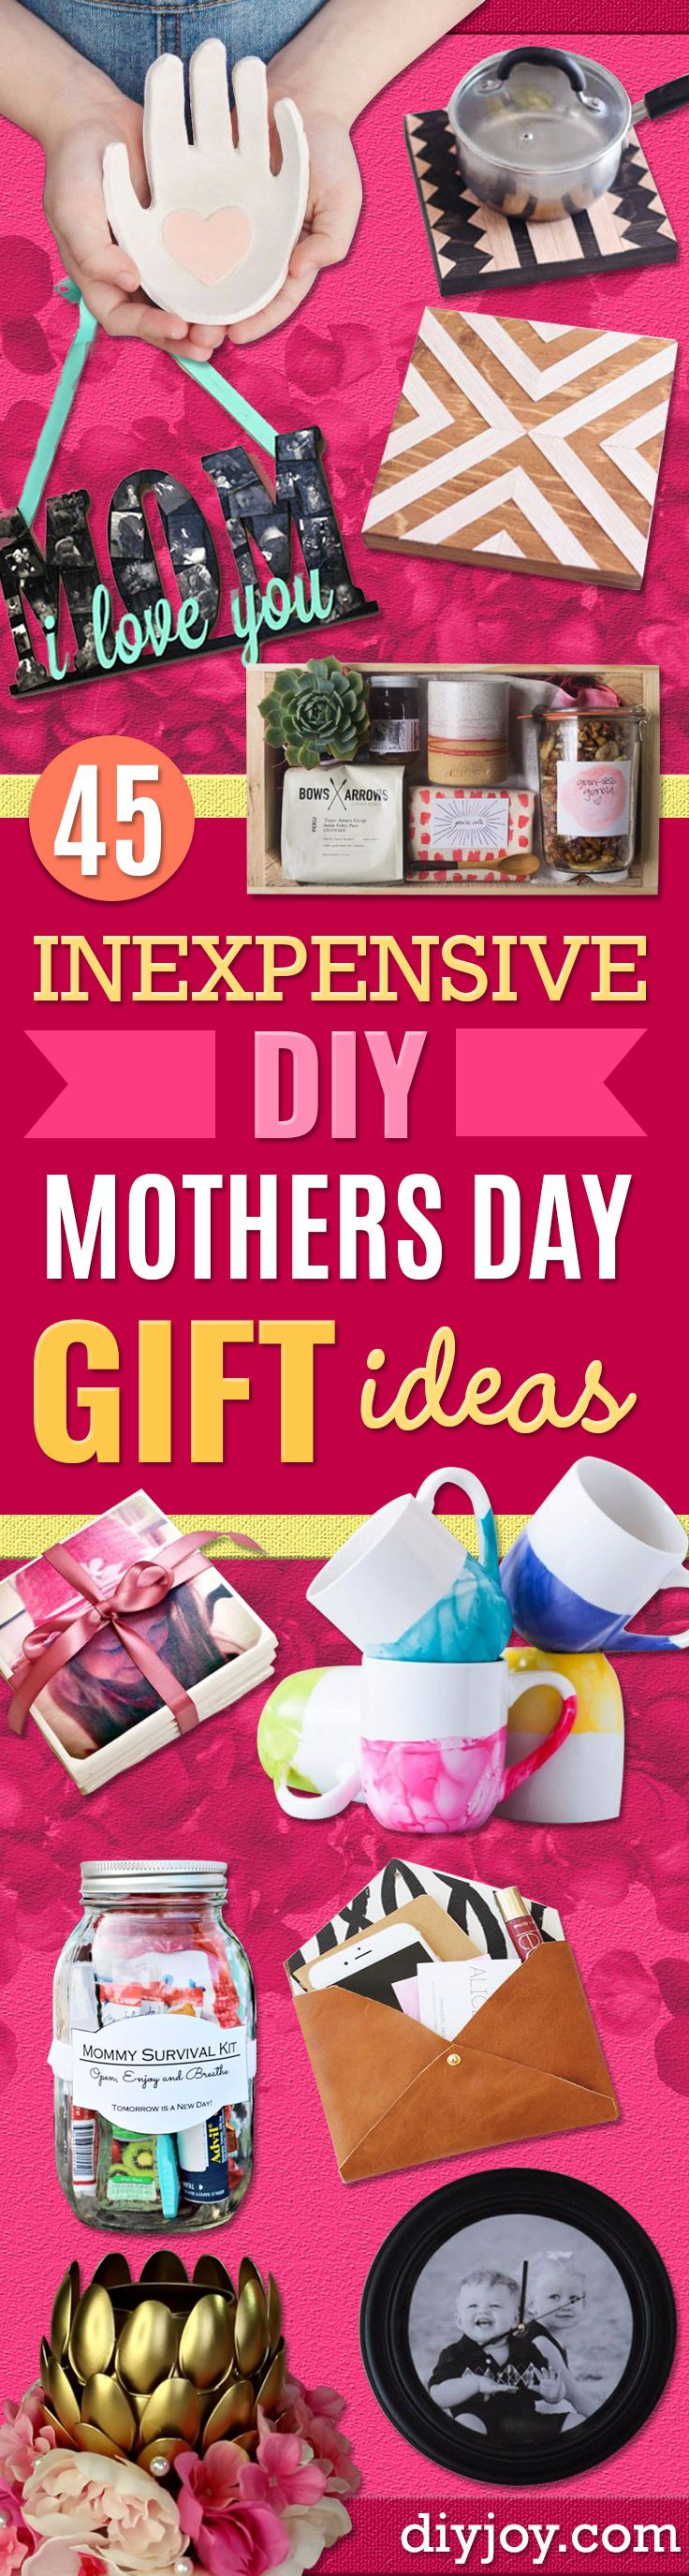 45 Inexpensive Diy Mothers Day Gift Ideas Homemade